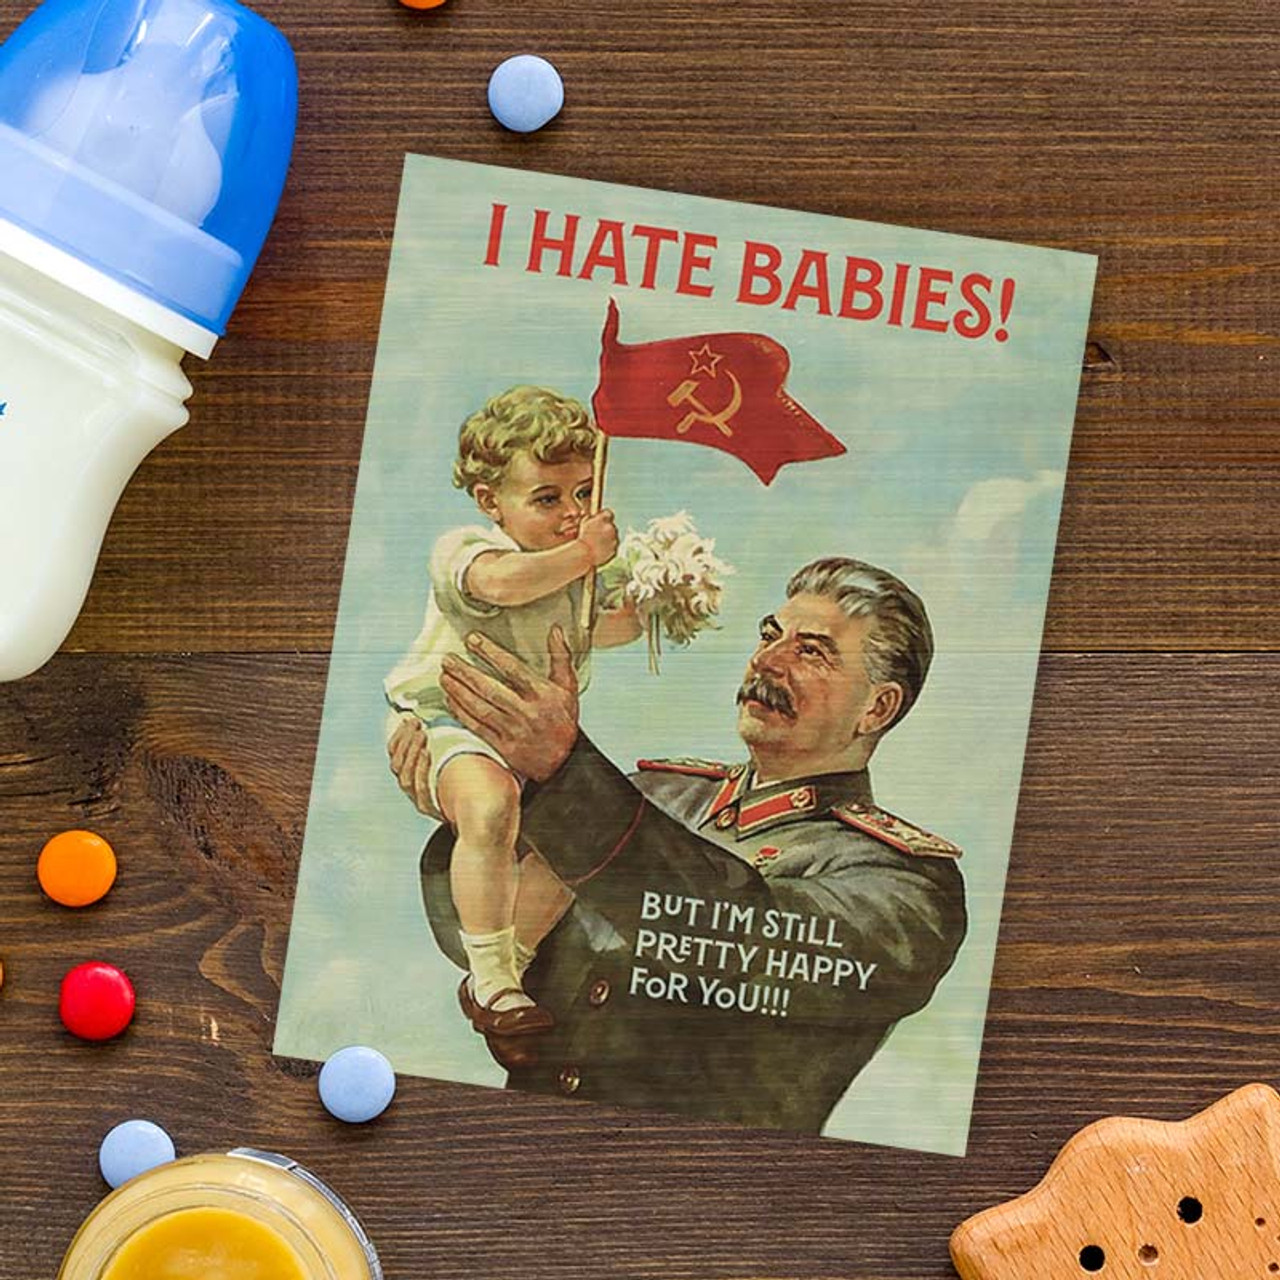 Do babies scare you? I Hate Babies, But I'm Still Pretty Happy For You! Greeting Card